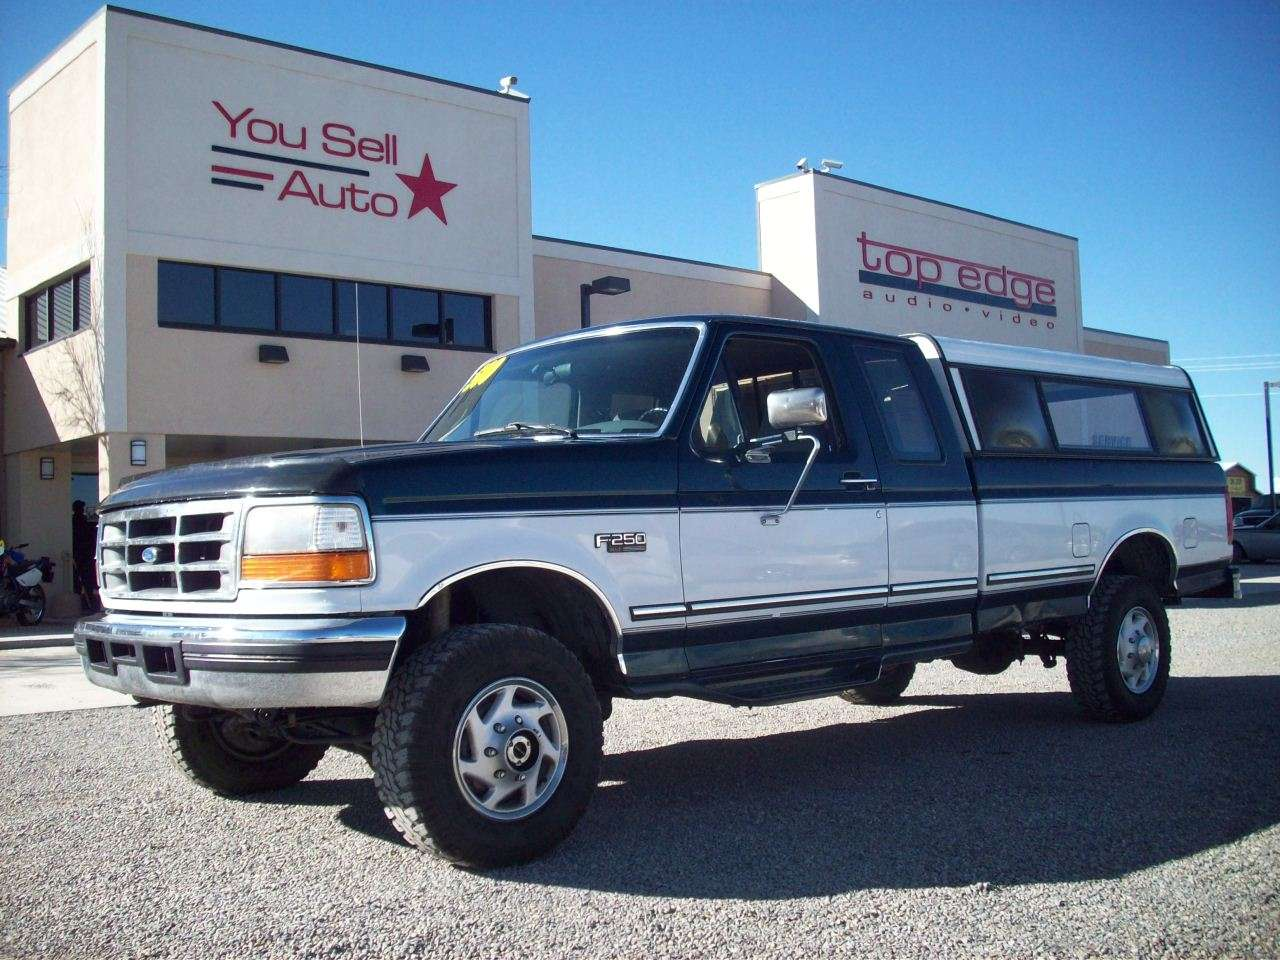 You Sell Auto 1996 Ford F250 Xlt 4x4 2 Door Pickup With